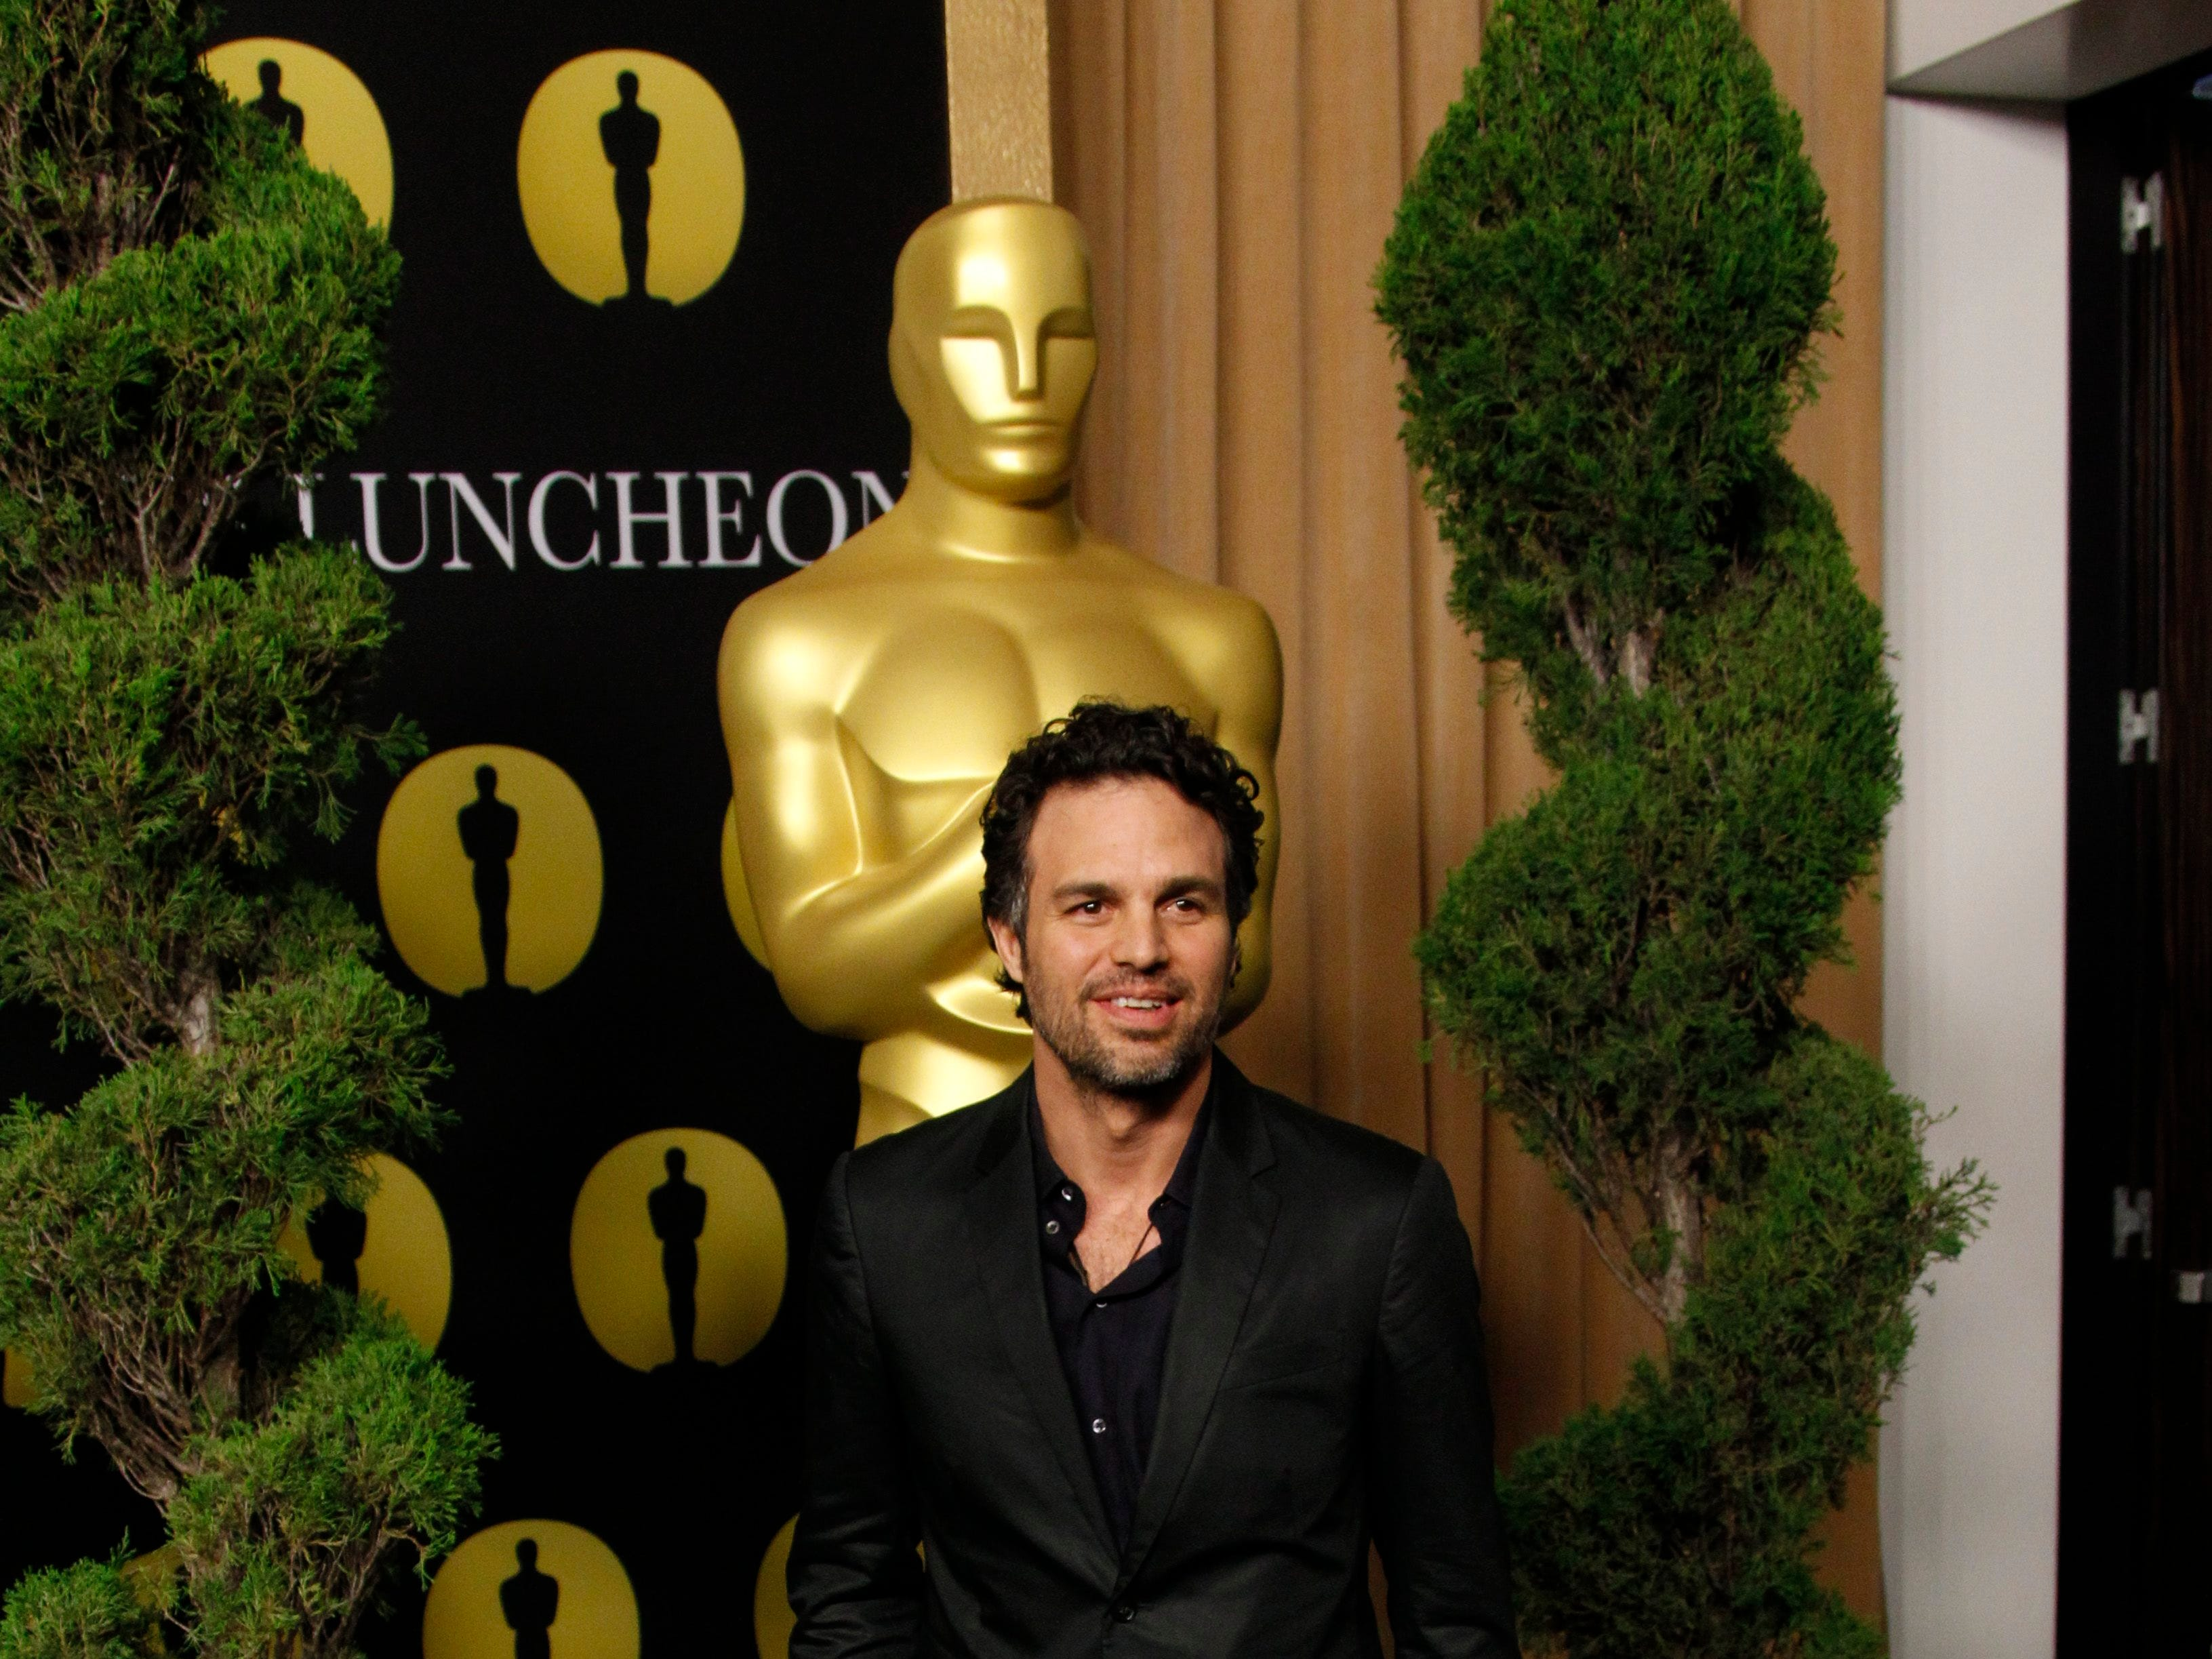 ORG XMIT: DM 39781 OSCAR LUNCHEON 2/7/2011  2/7/11 12:11:26 -- Beverly Hills, CA, U.S.A  -- Mark Ruffalo arrives at the luncheon for 2011 83rd annual Academy Award nominees, held at the Beverly Hilton Hotel in Beverly Hills, CA   Photo by Dan MacMedan, USA TODAY contract photographer   [Via MerlinFTP Drop]